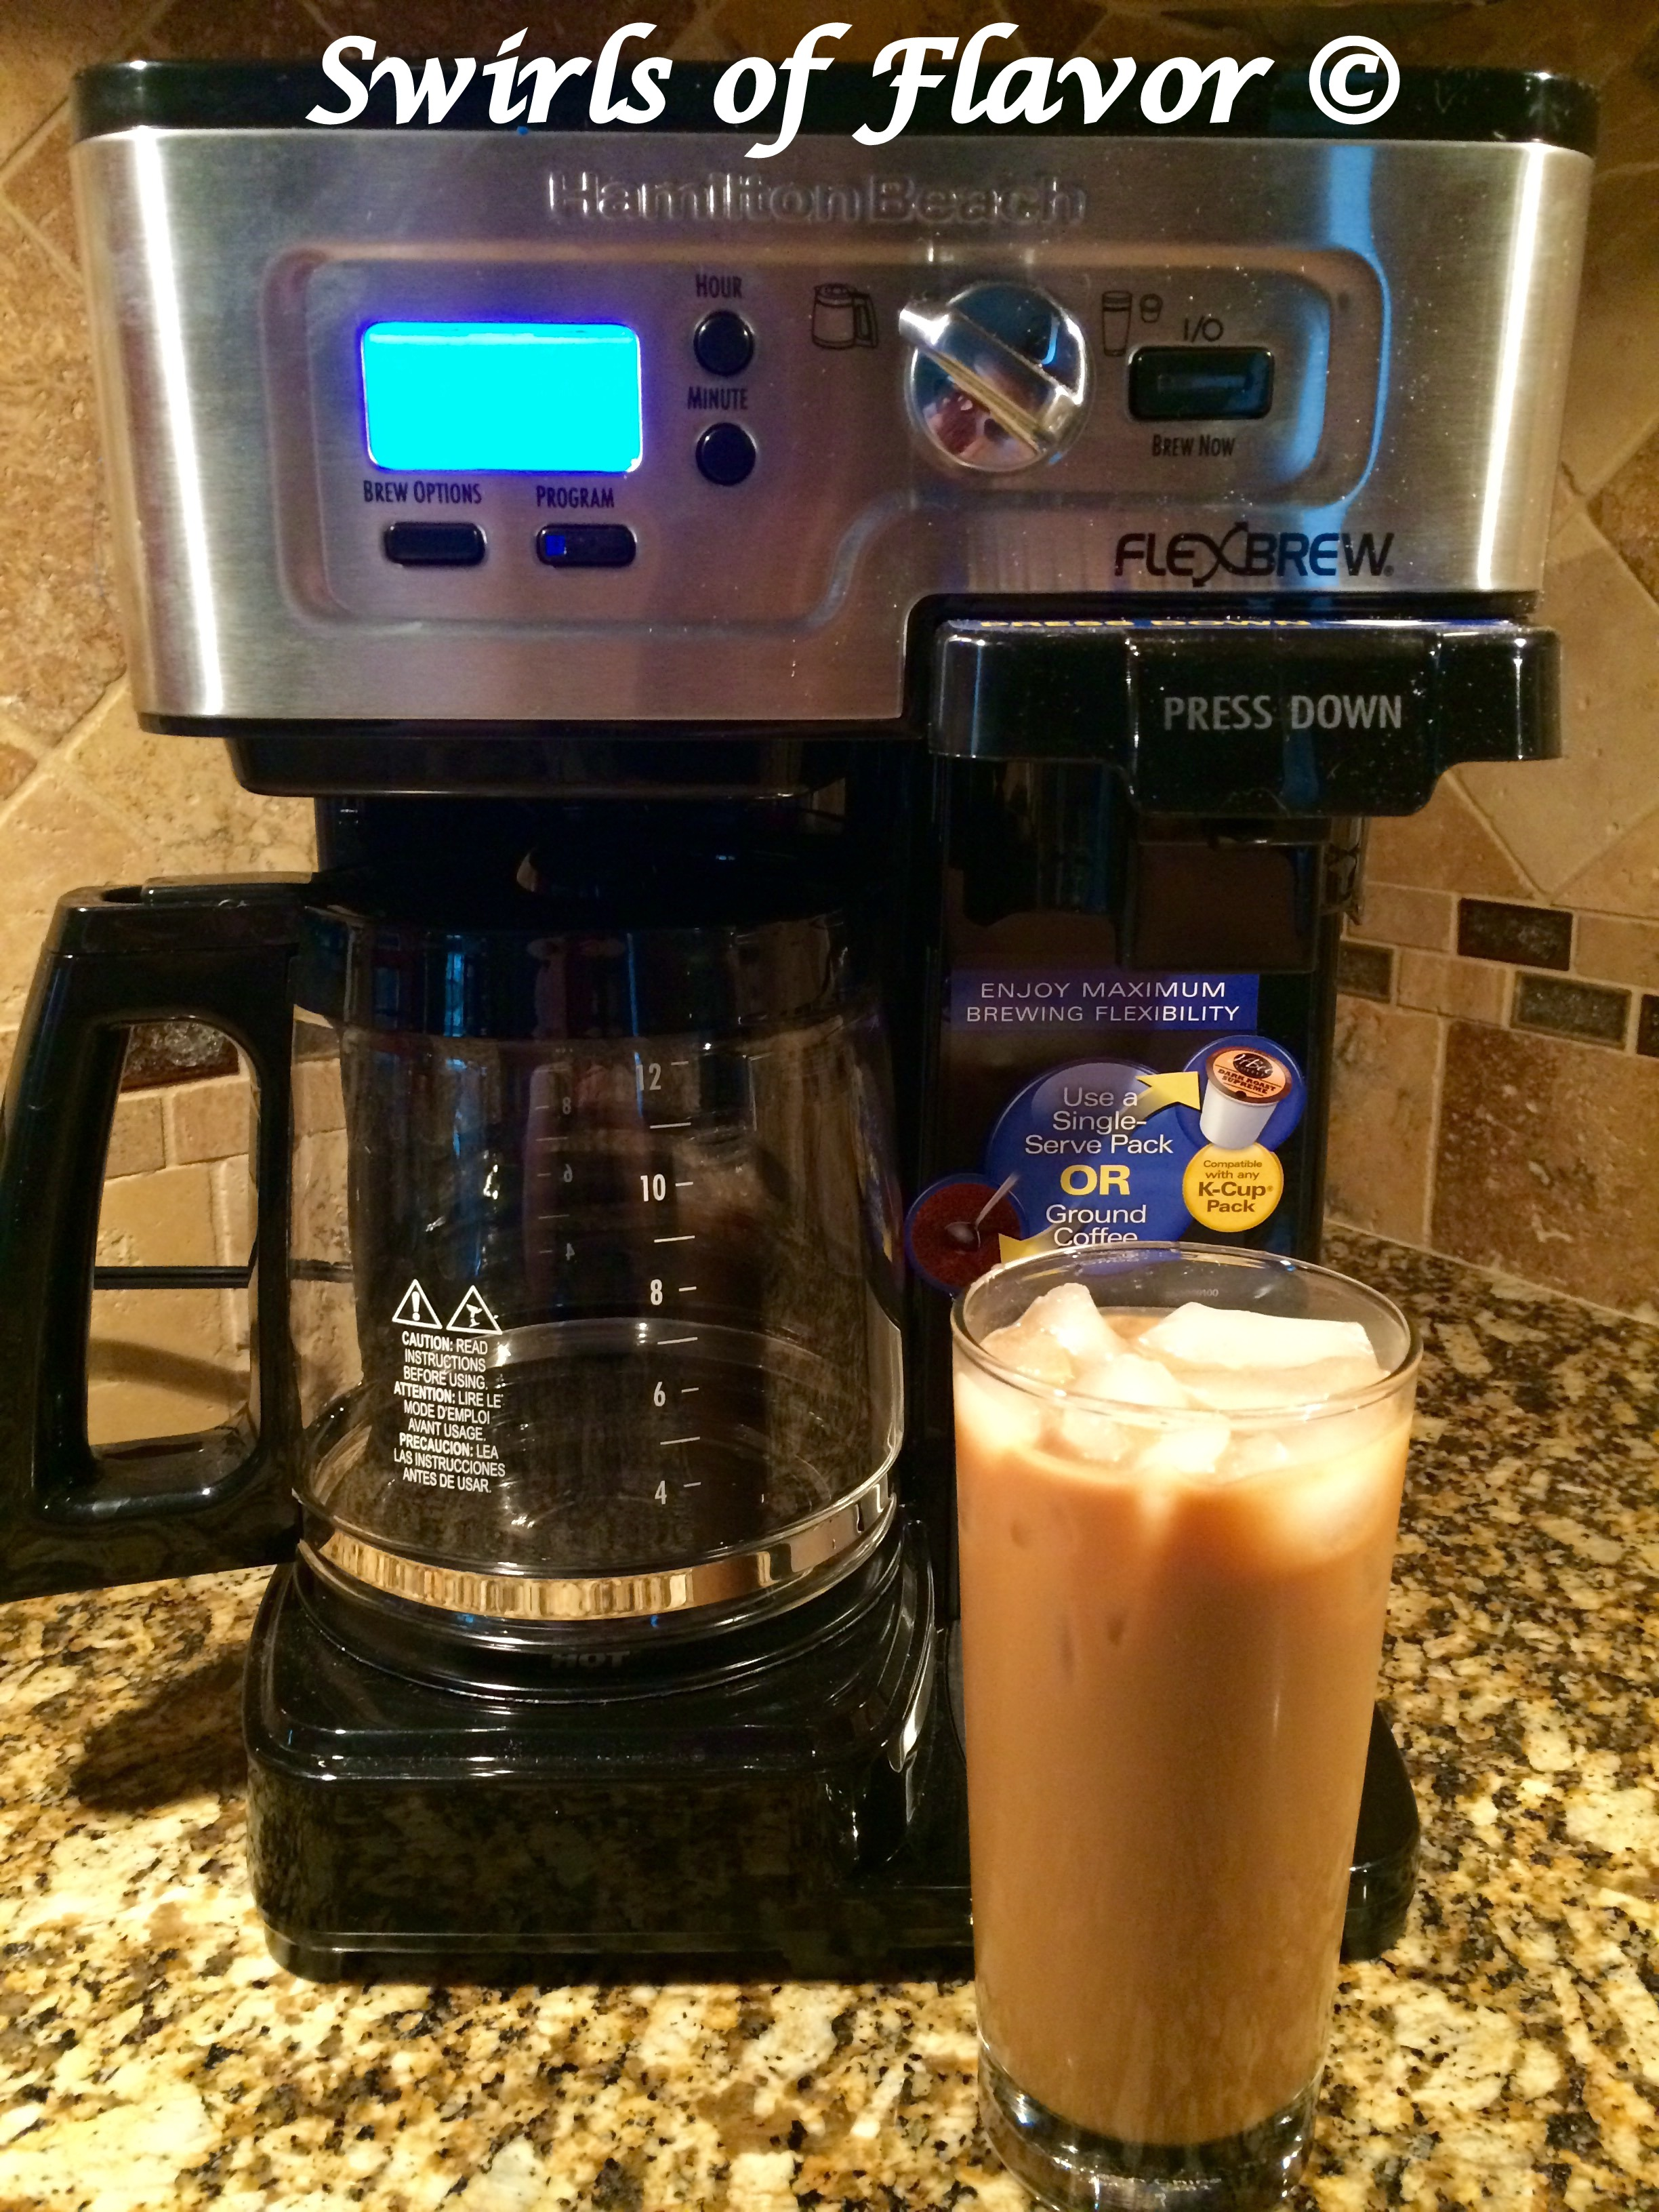 Cafe Au Lait Iced Coffee And Hamilton Beach 2 Way Flexbrew